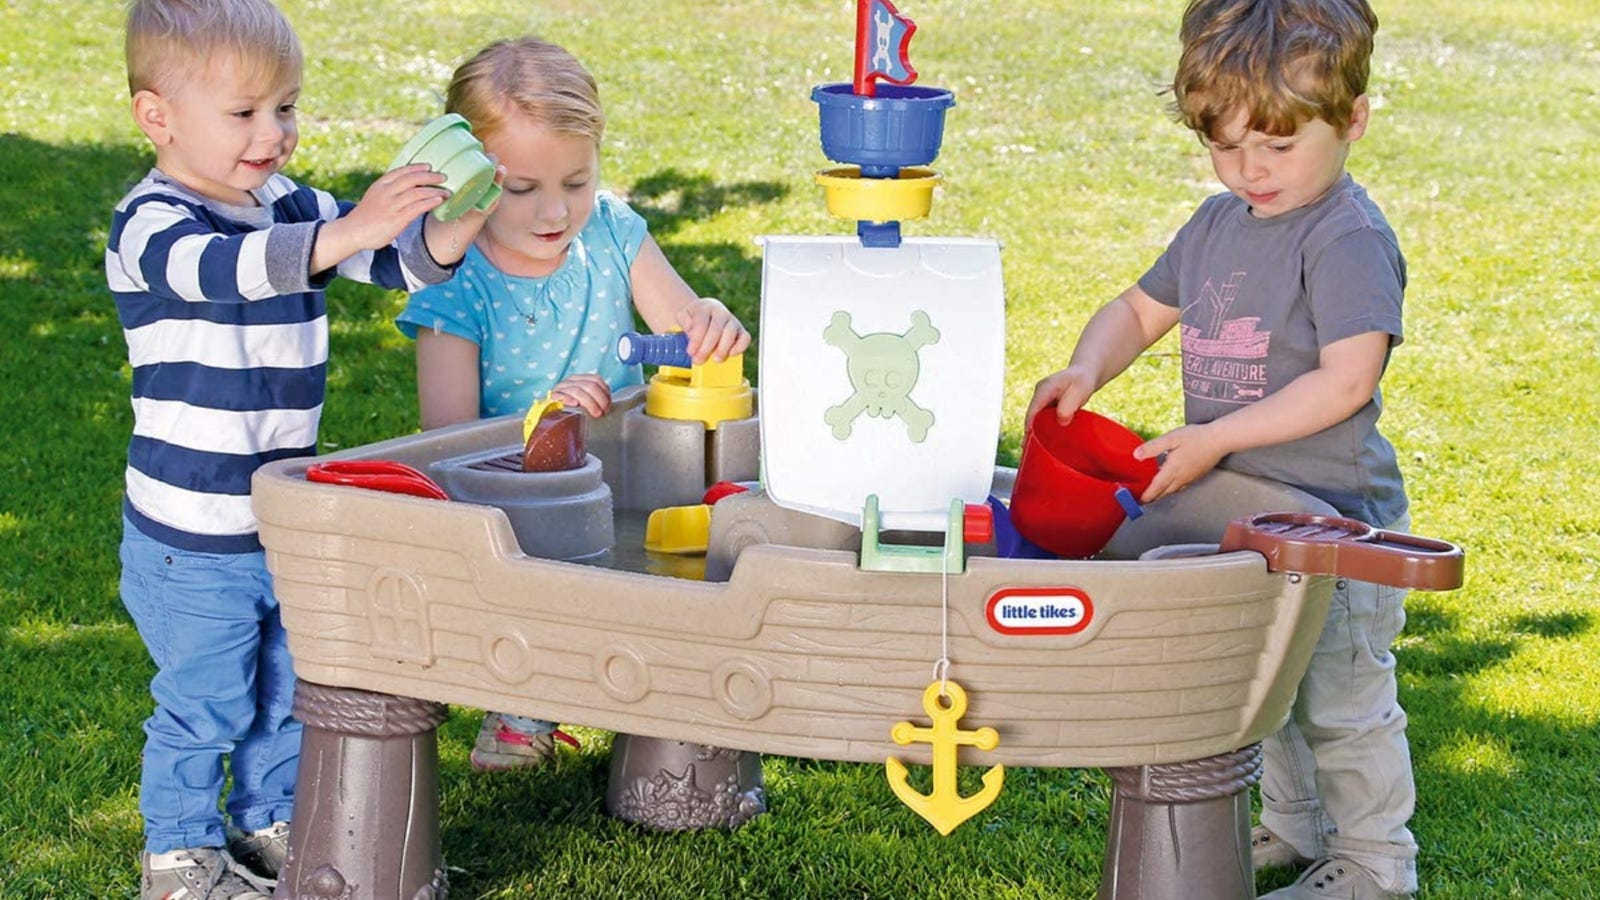 Three young children playing with a Little Tikes water table.